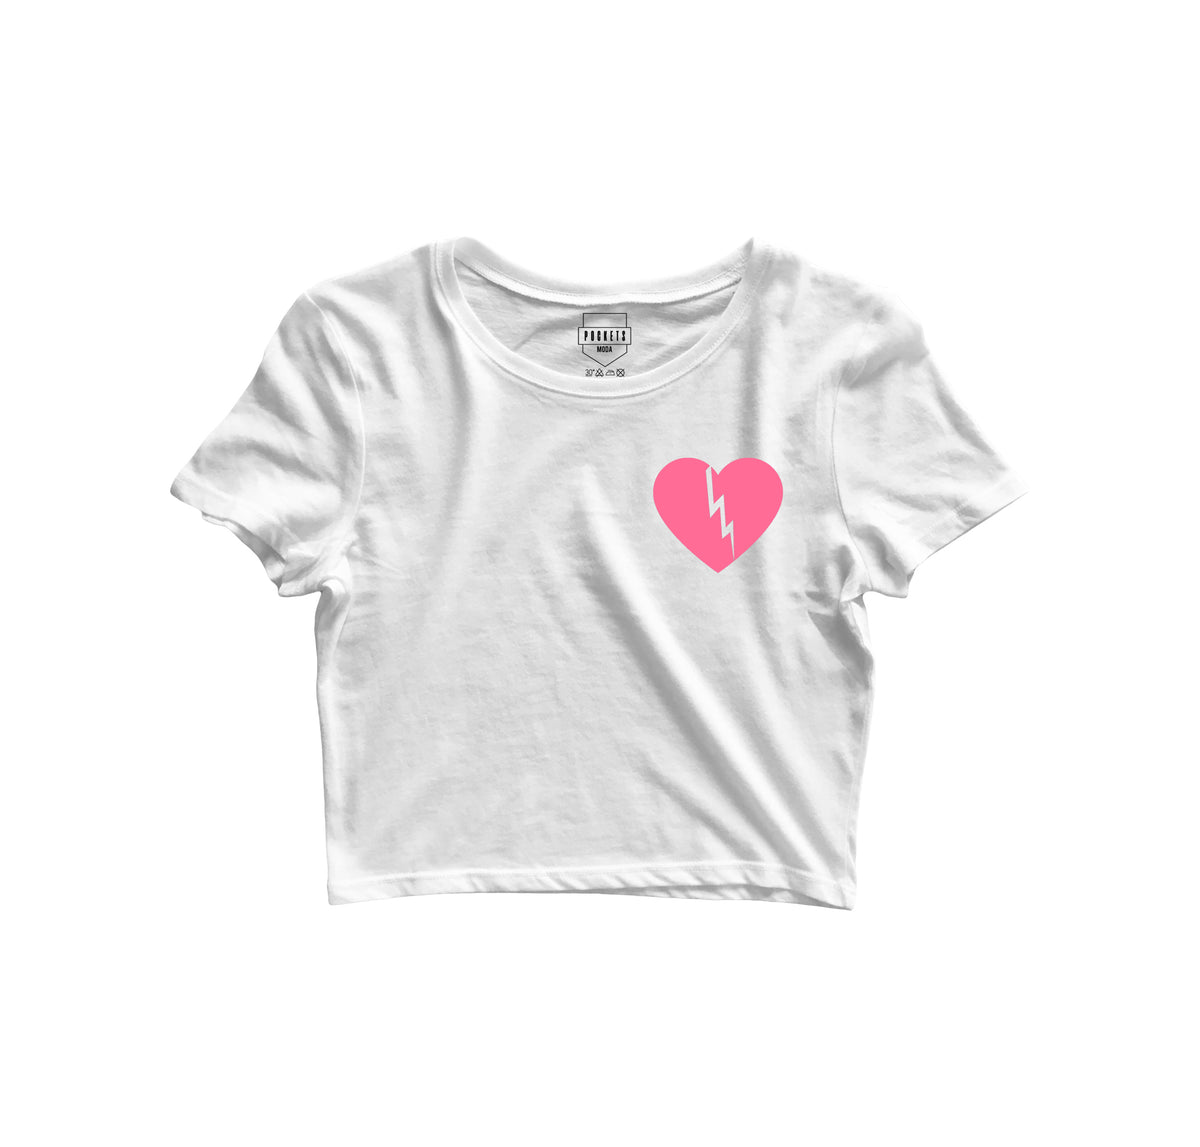 Heart Break Crop Top - Pockets Moda Customise Hoodies and Tshirt